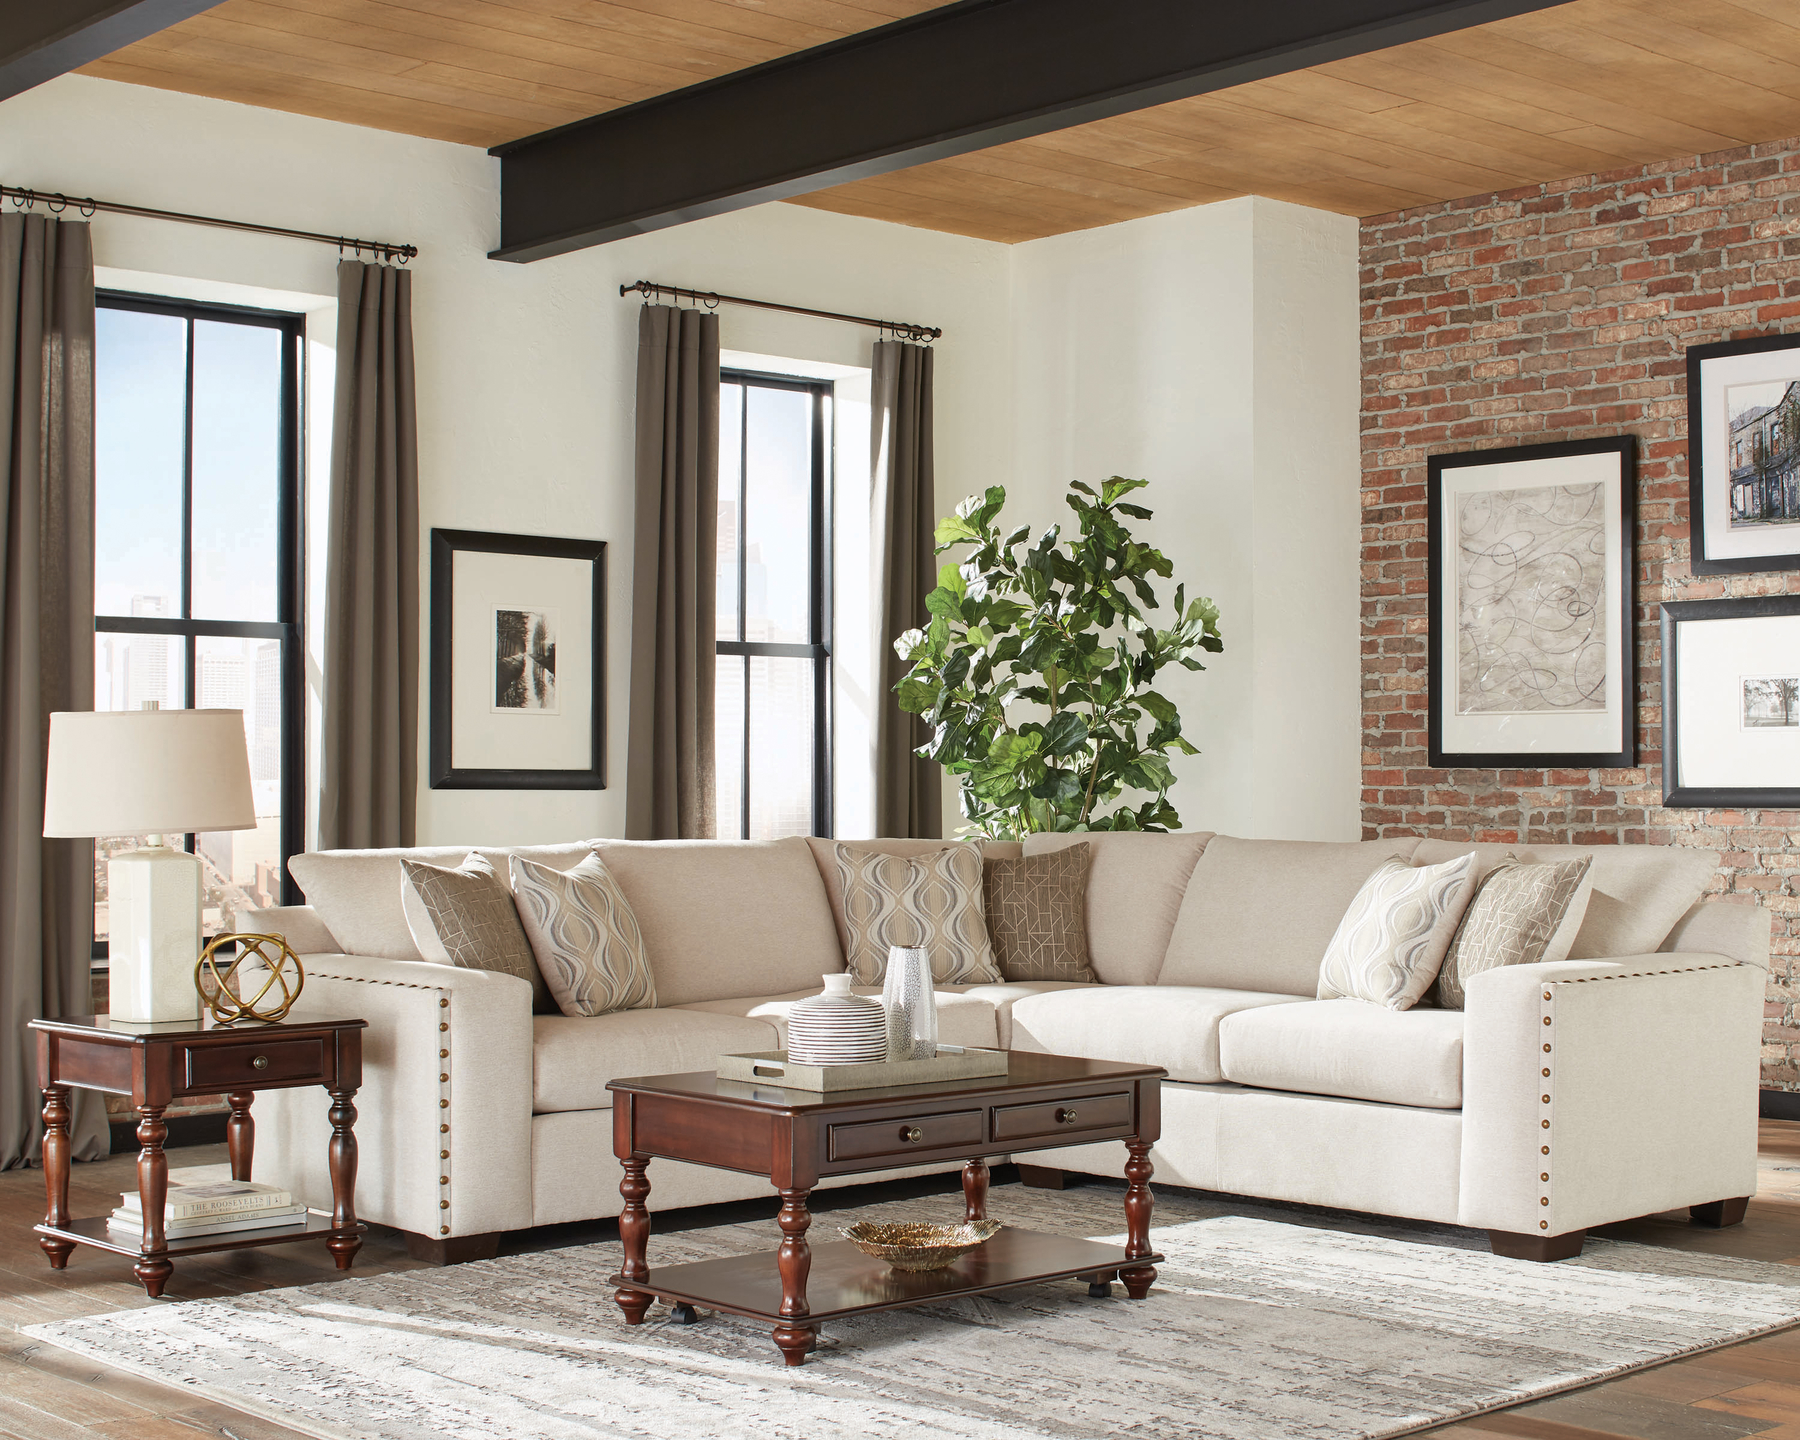 Aria Sectional Sofa 508610 Coaster Furniture Sectional Sofas Comfyco Furniture